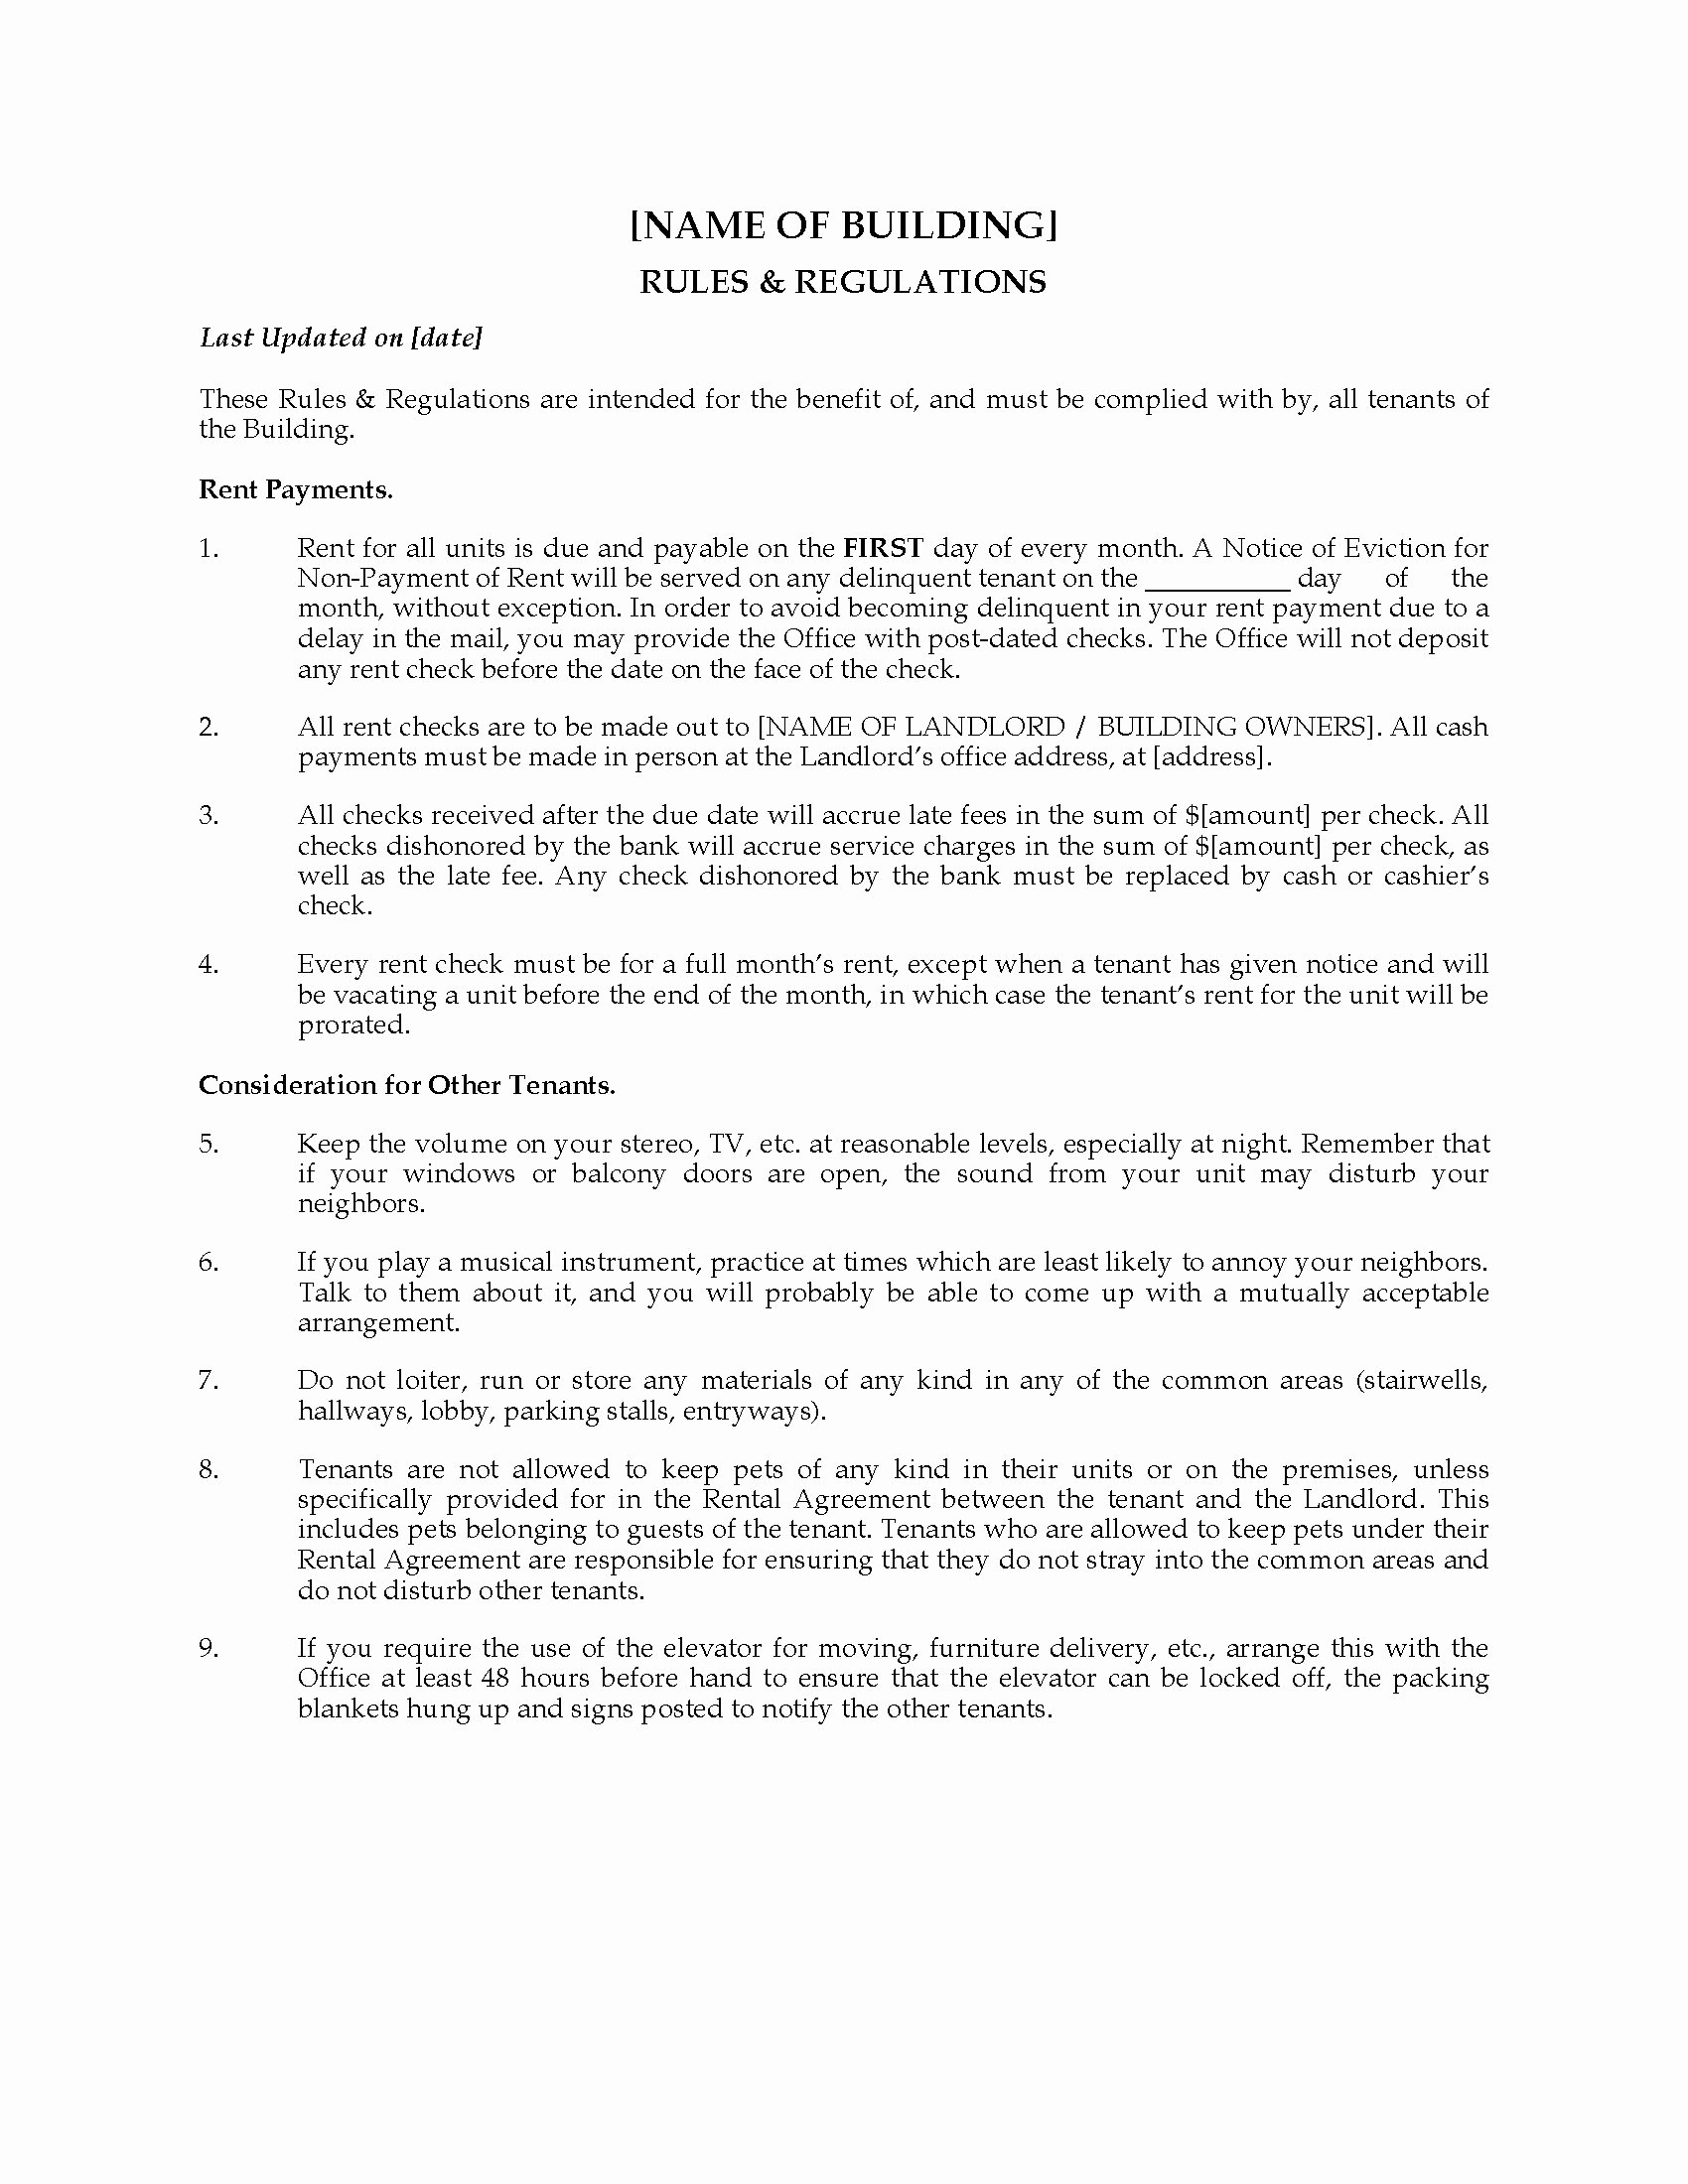 Apartment Building Rules and Regulations